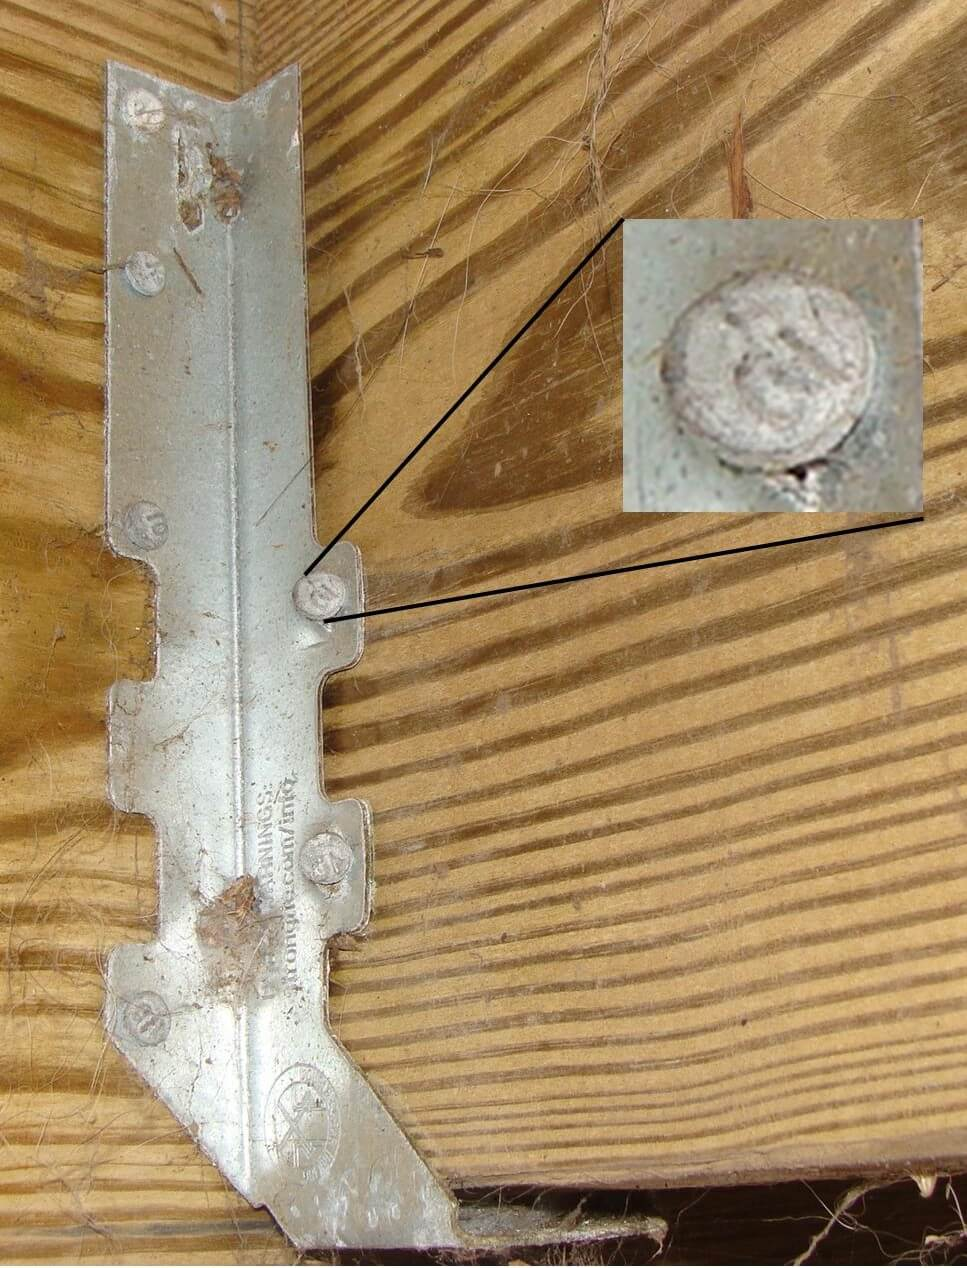 Deck joist hanger nails